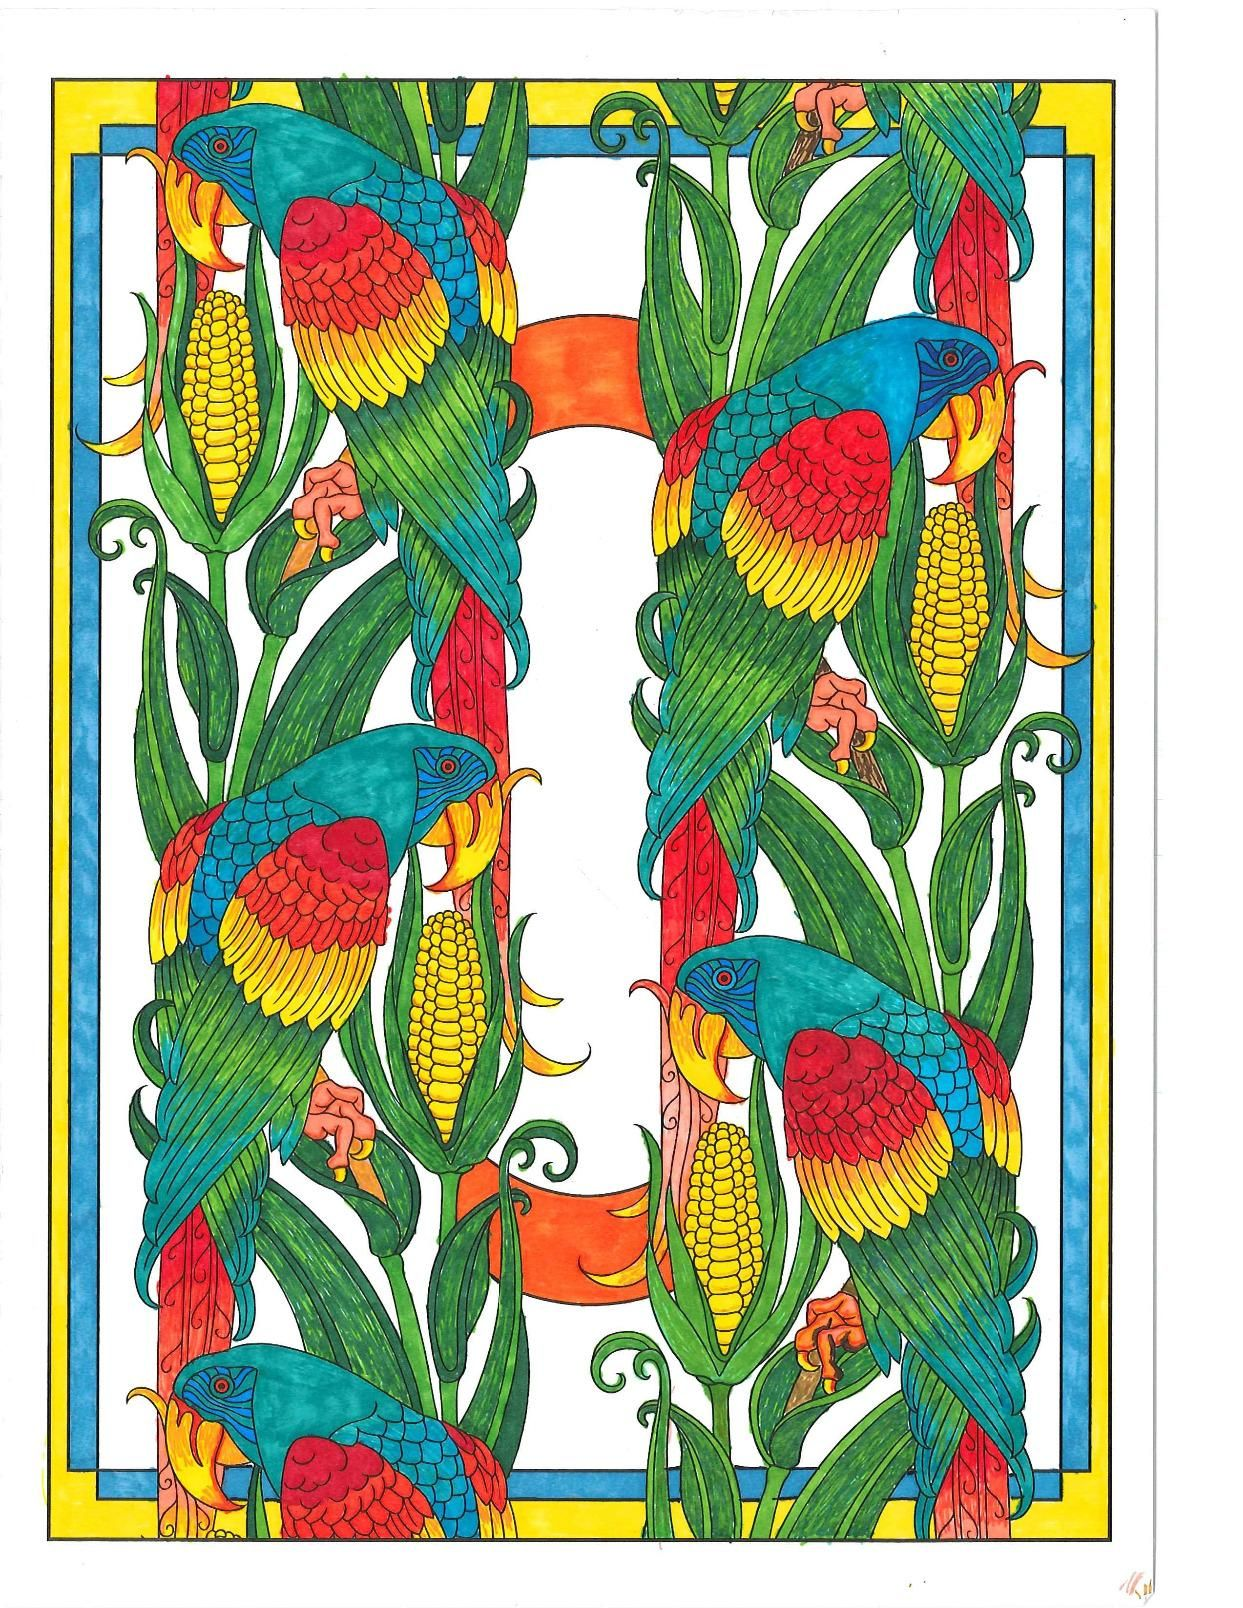 Flower drawings on pinterest dover publications coloring pages and - Colored With Ultra Fine Sharpies And Bic Mark It Markers From Art Nouveau Animals Coloring Book From Dover Publications